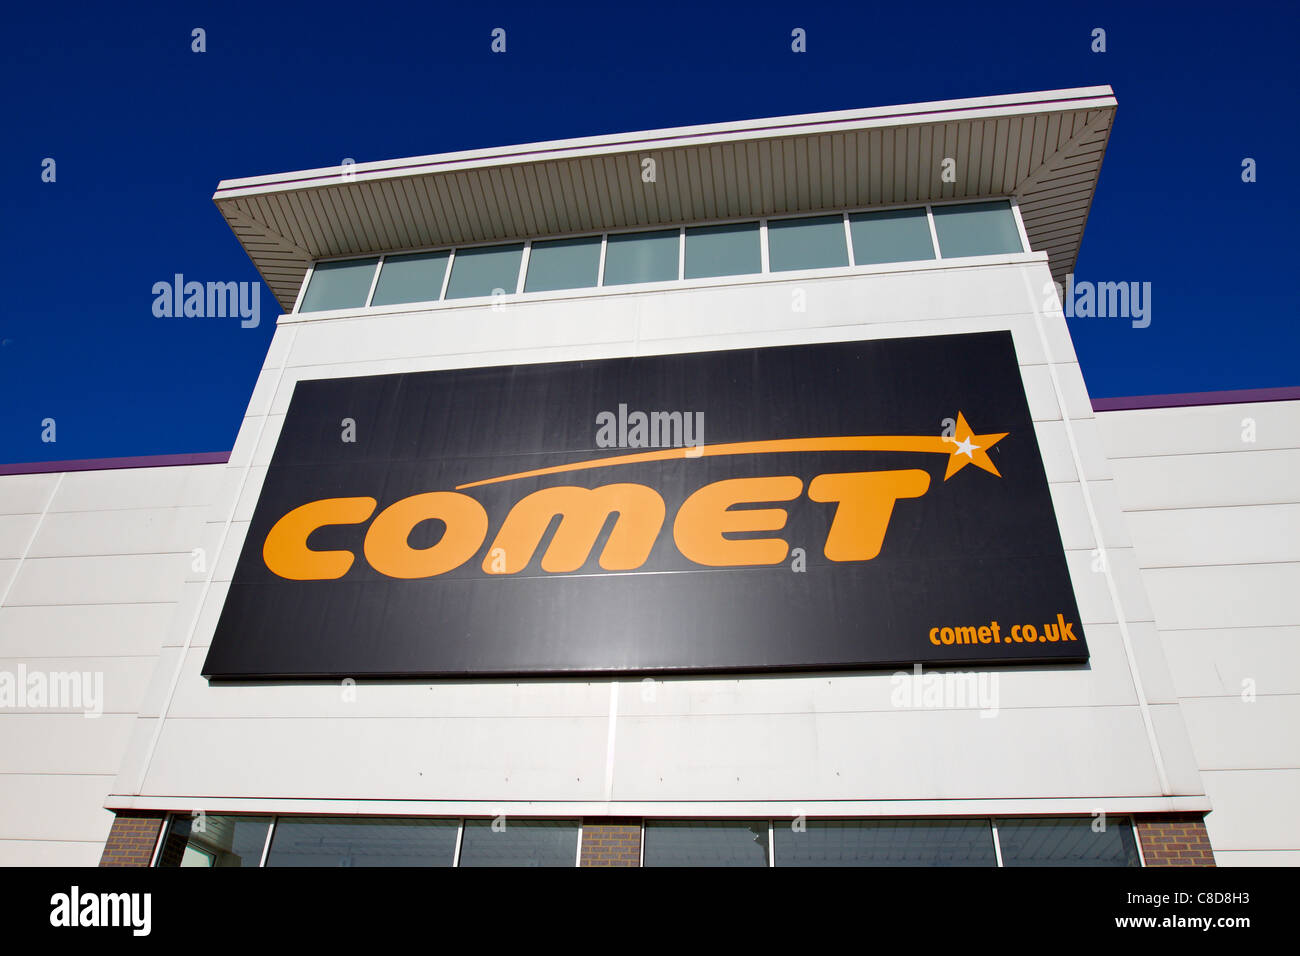 General view of the exterior of a Comet electrical store in Aylesbury - Stock Image